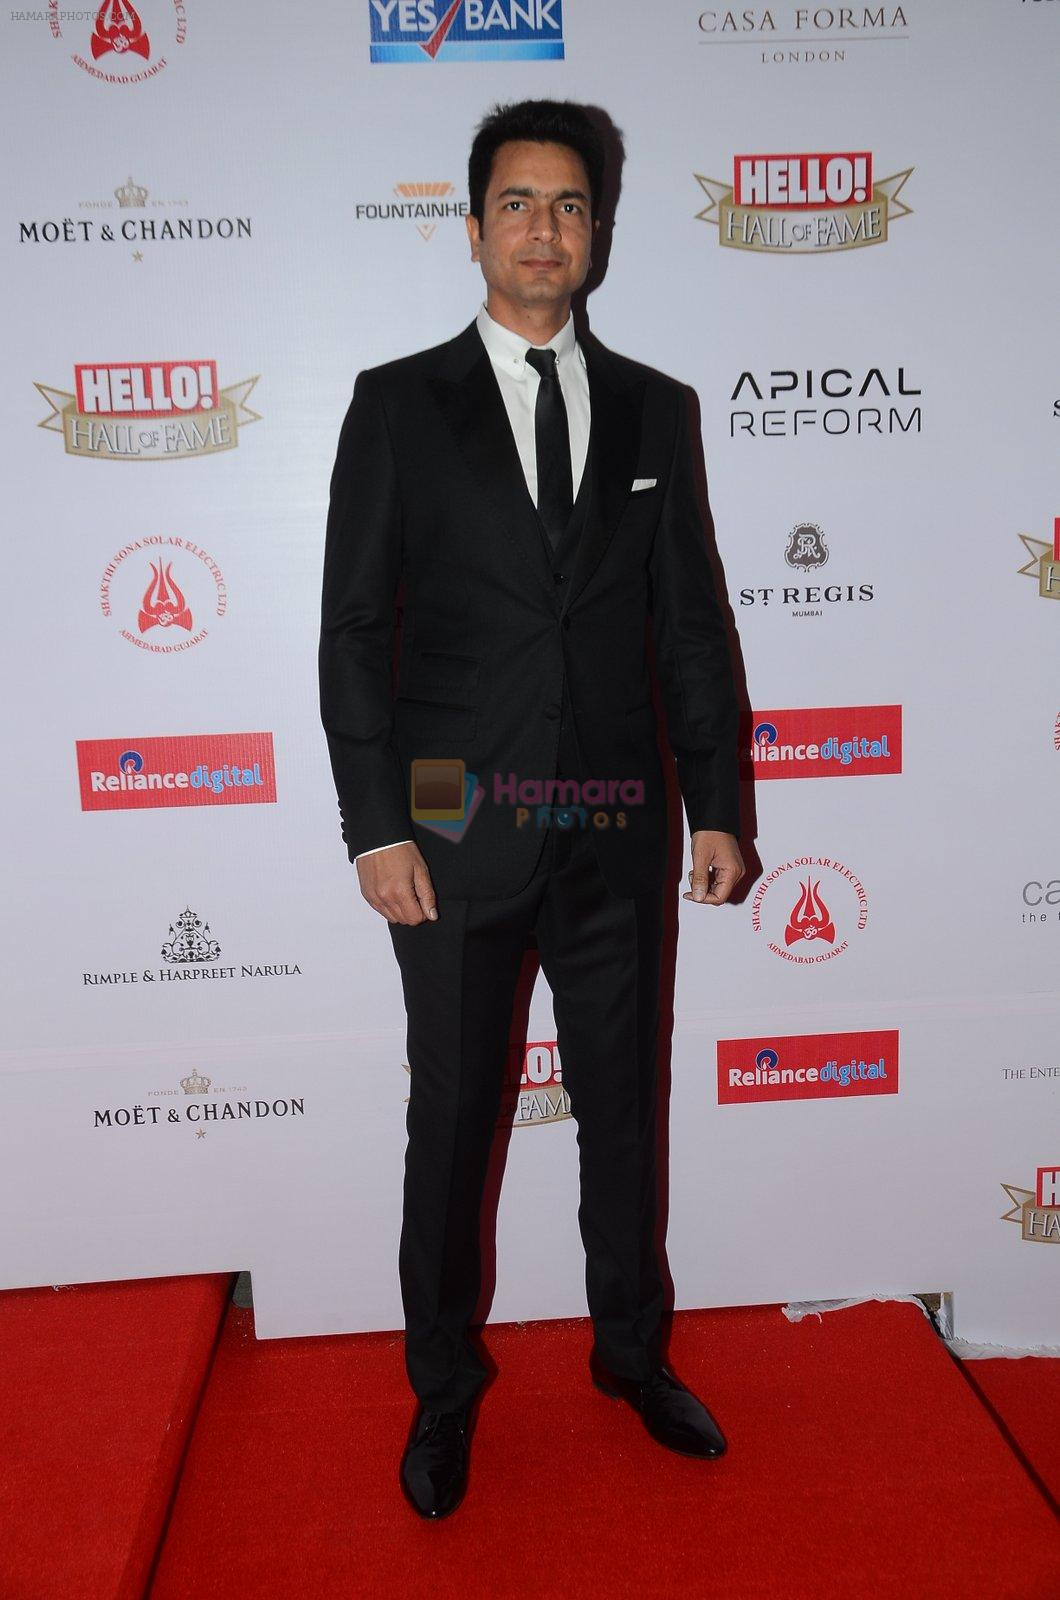 at Hello Hall of Fame Awards 2016 on 11th April 2016